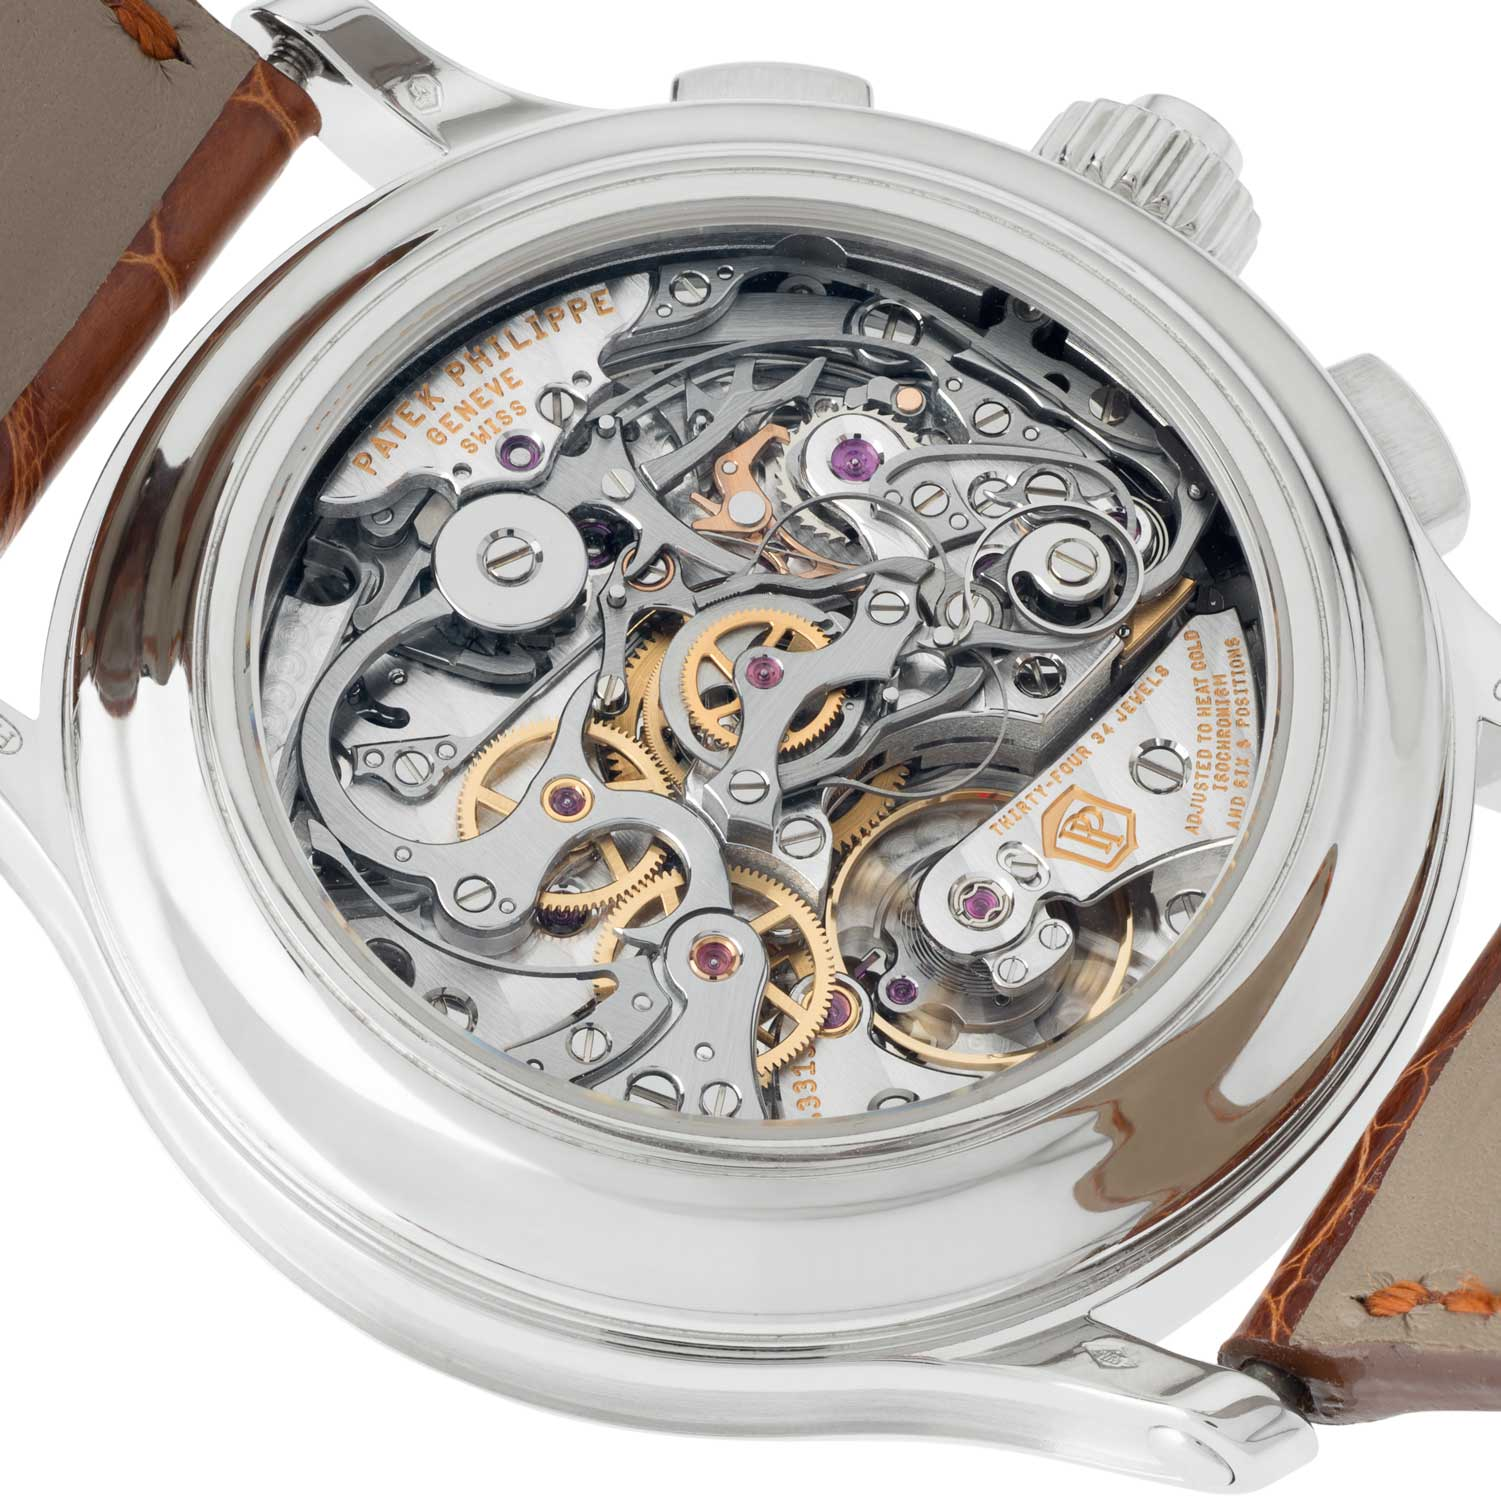 Caseback of Shary's ef. 5370P, in platinum powered by the CH 29-535 based CHR 29-535 movement (©Revolution)